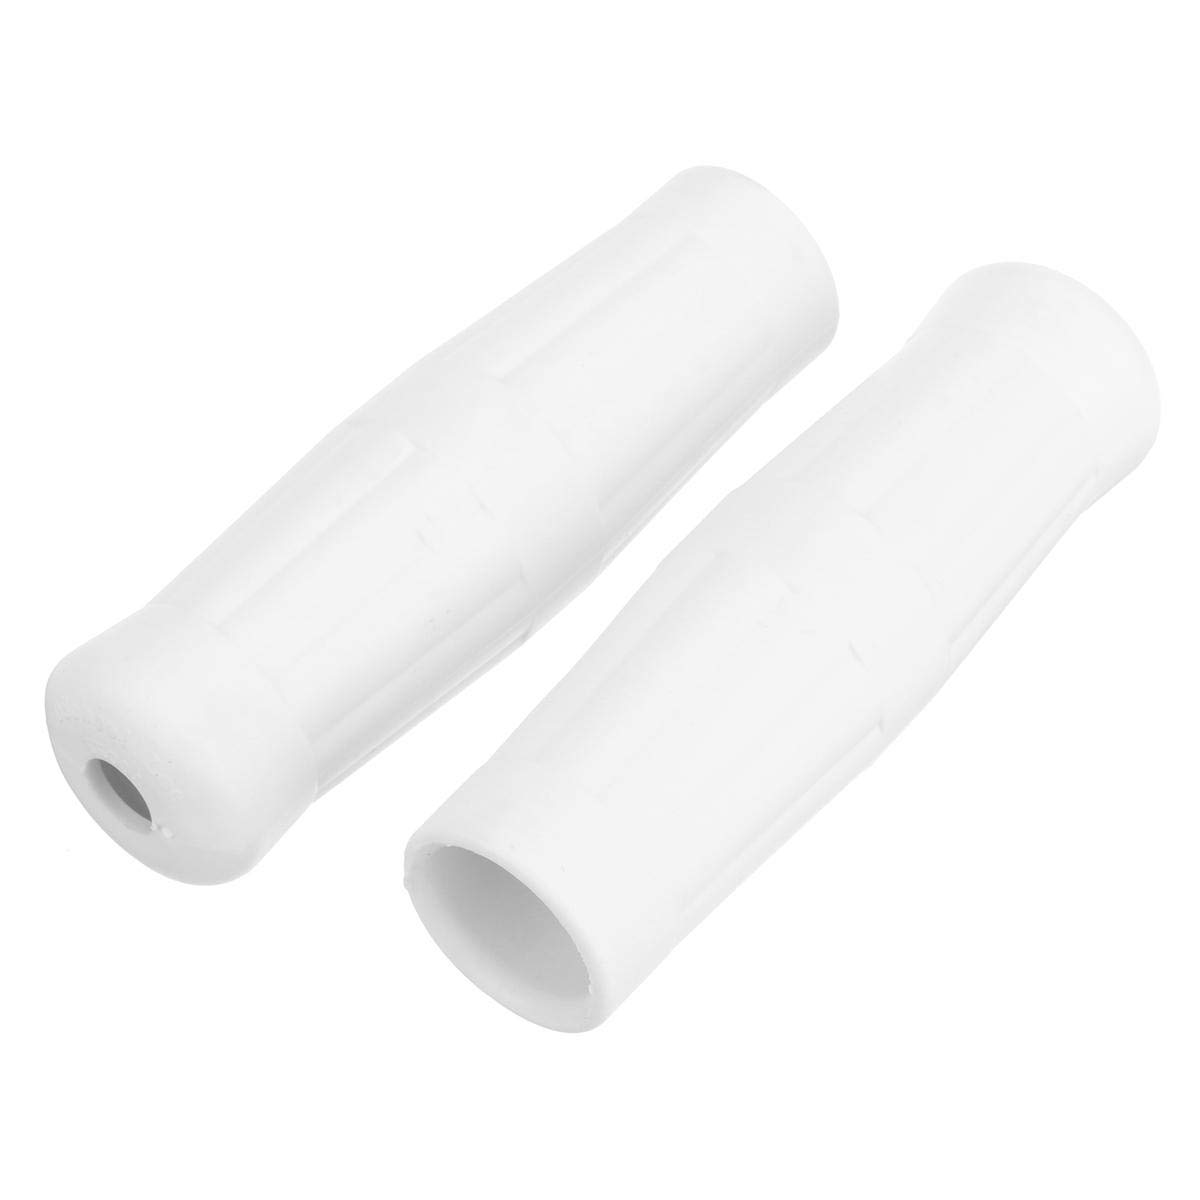 C-FUNN 25mm 1 inch Motorcycle GOtage Classic Coke Bottle Handlebar Rubber Hand Grips White